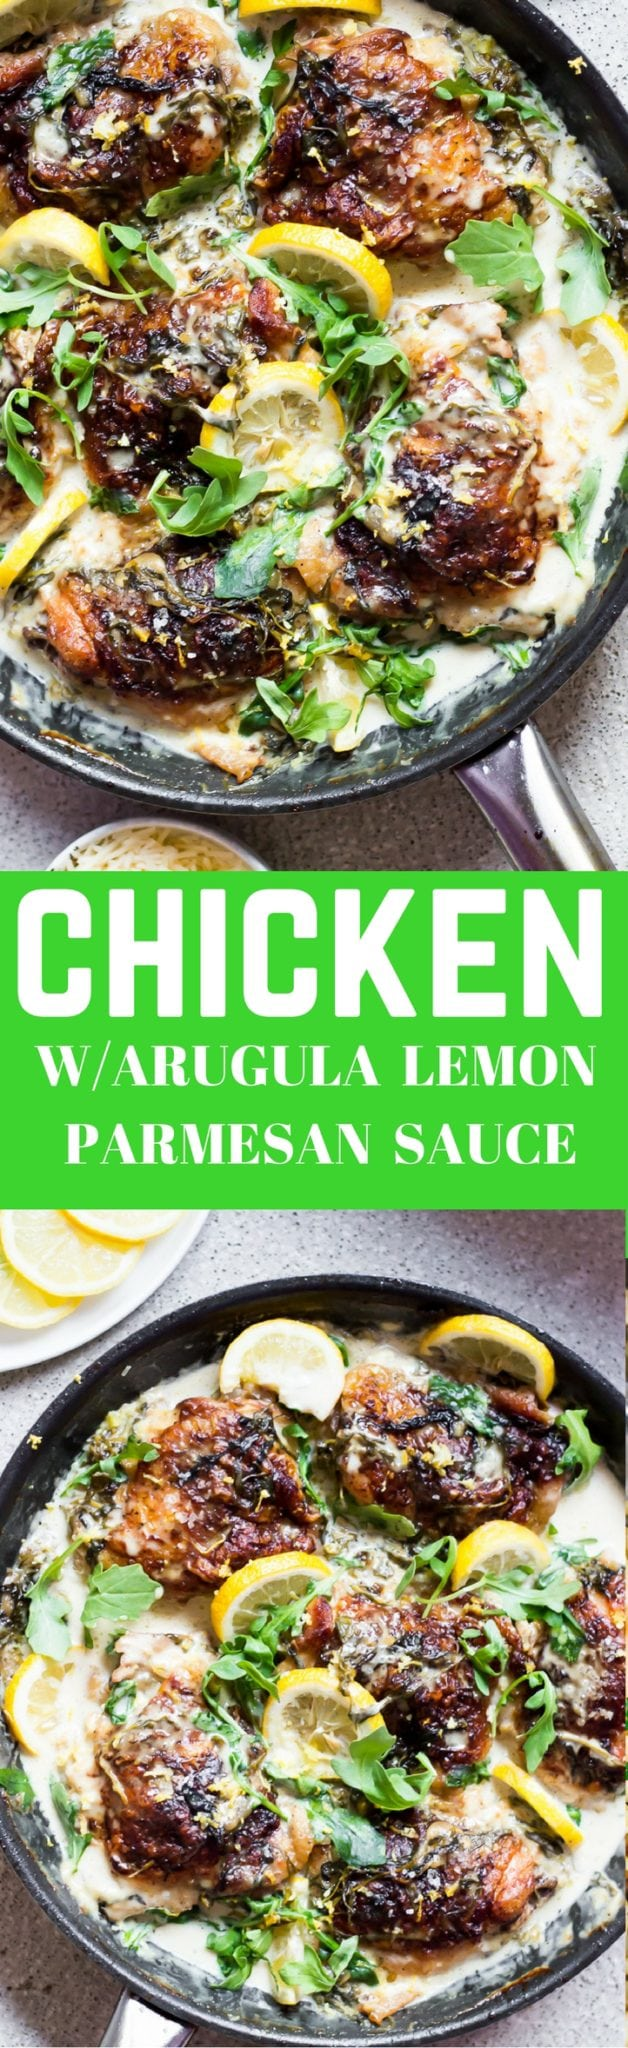 Tender, crispy, juicy chicken meets peppery arugula in a rich creamy lemon parmesan sauce. If you love chicken in creamy sauces then you have to try this restaurant quality dish. It's a favorite of mine and I am glad to share this recipe with you. I am sure you are going to LOVE IT! Make sure you serve this with garlic bread!